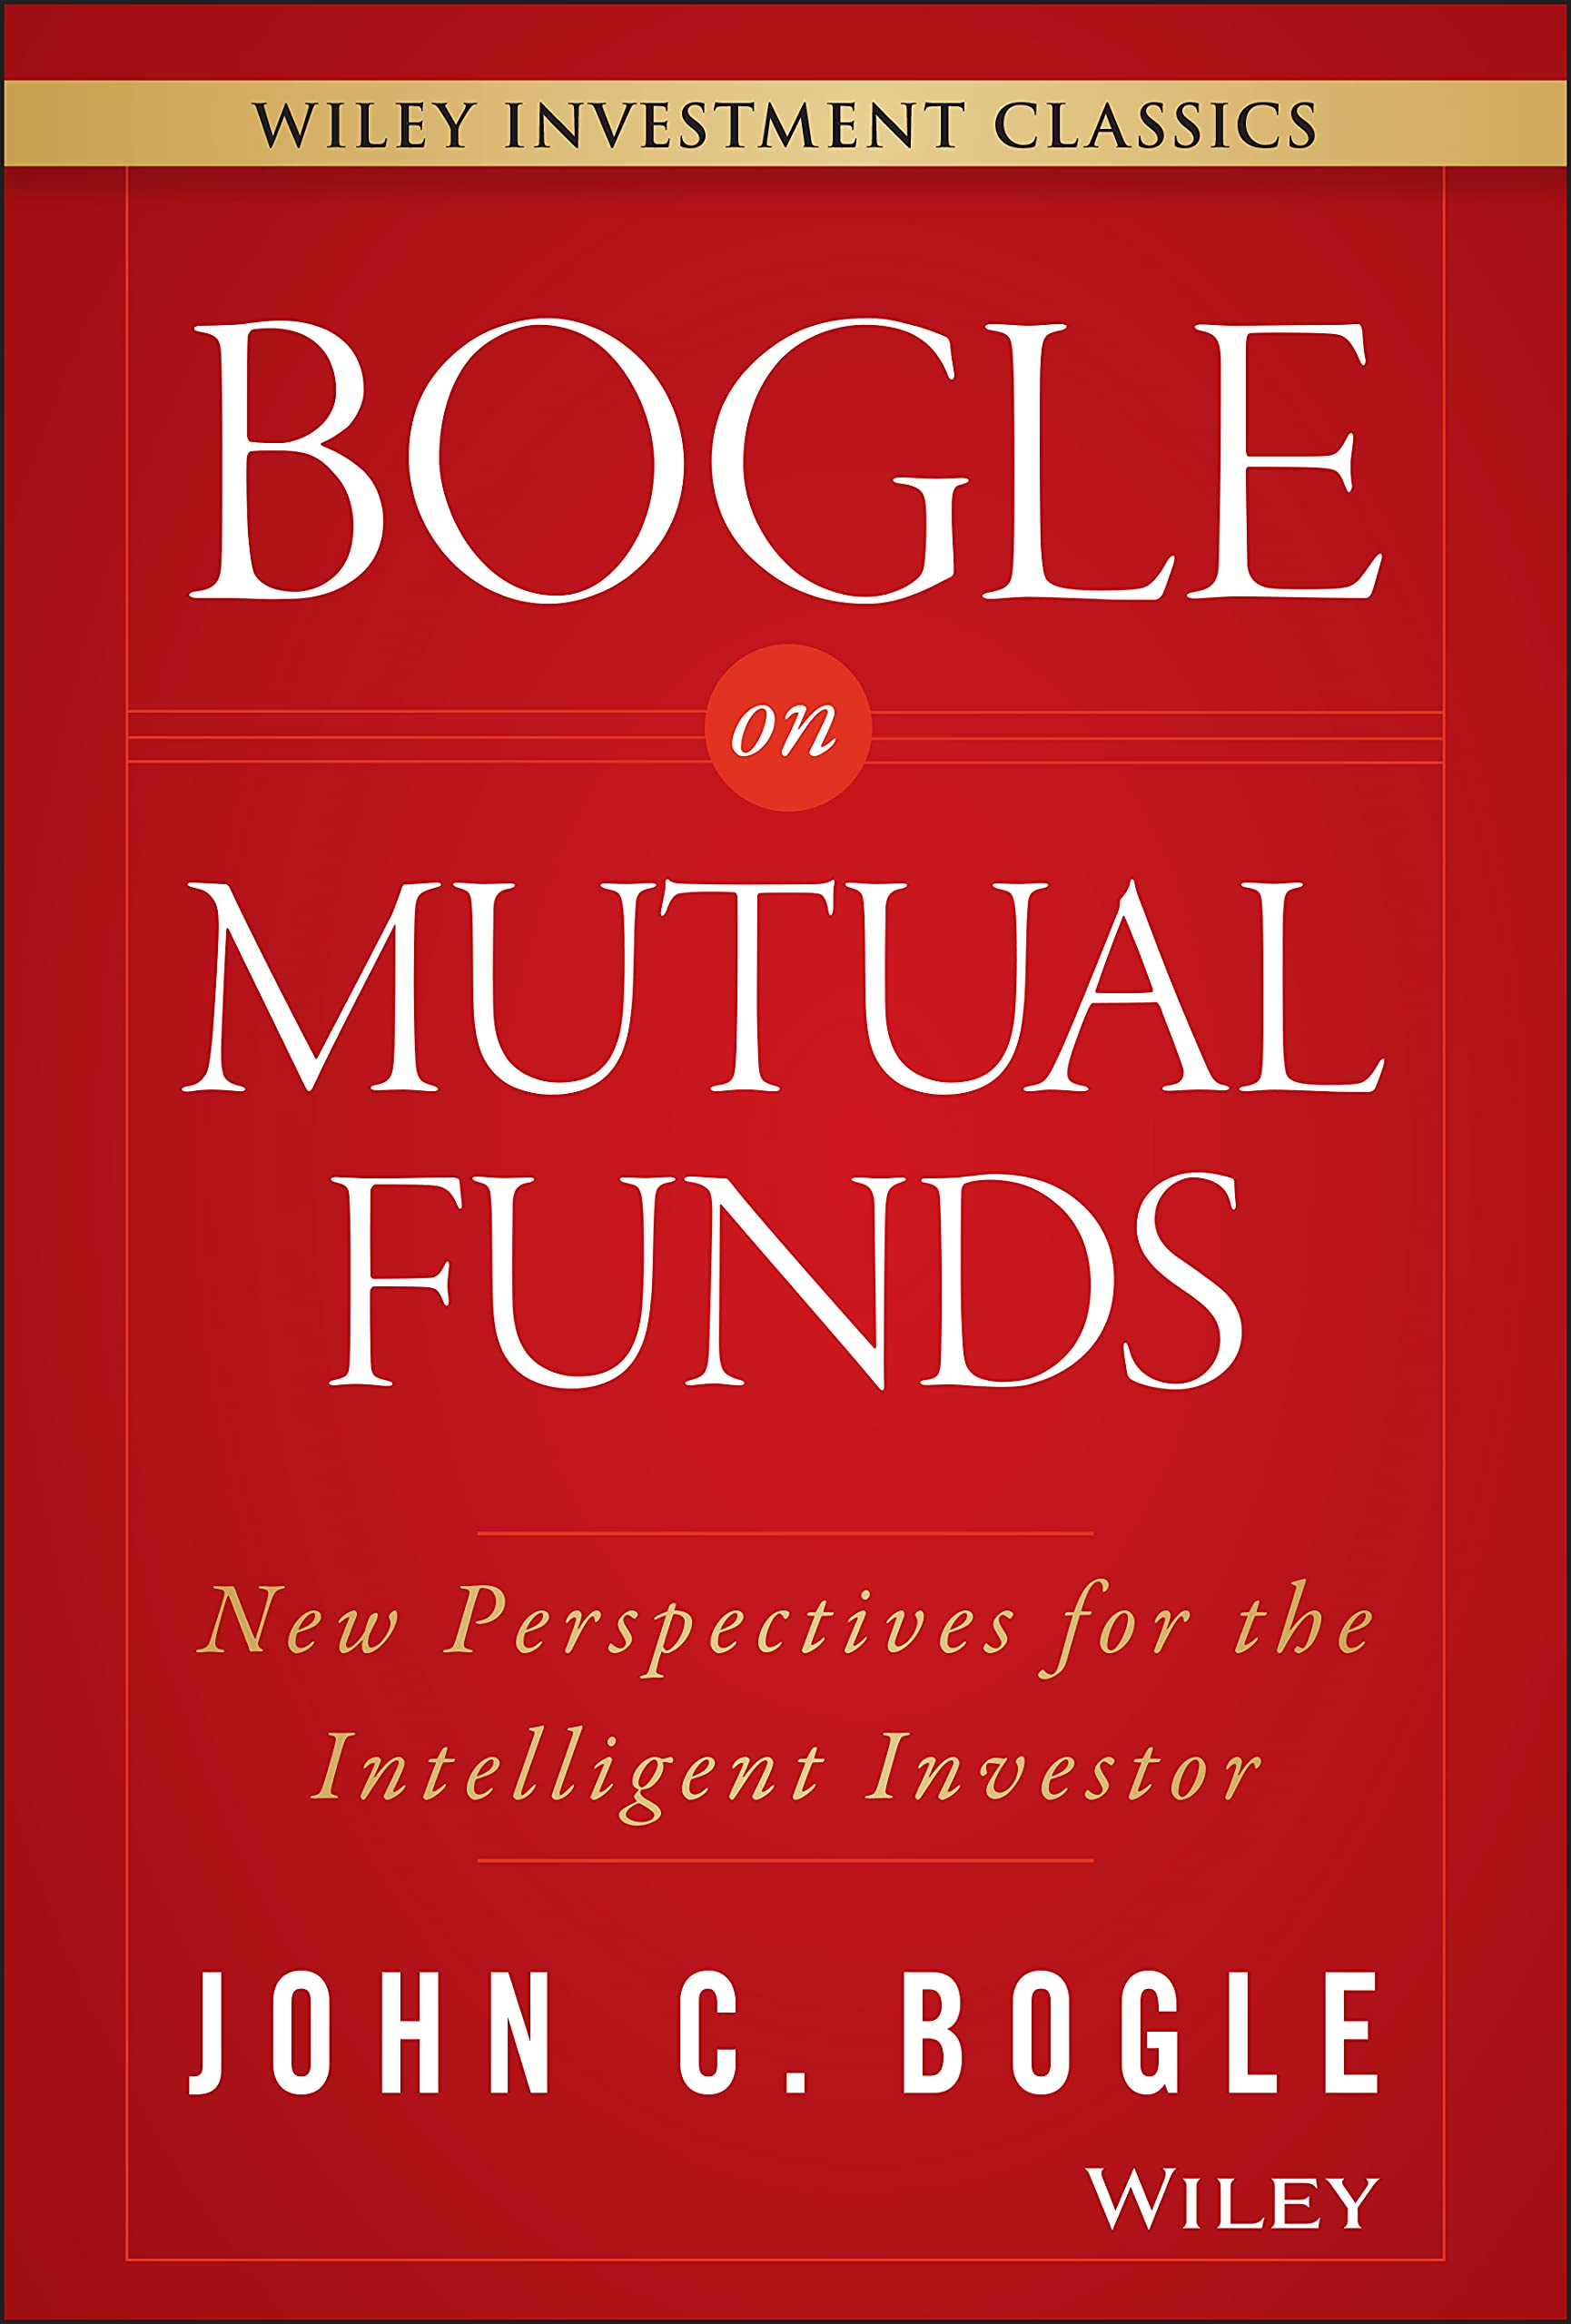 widely-accepted-wiley-investment-classics-books-library-2